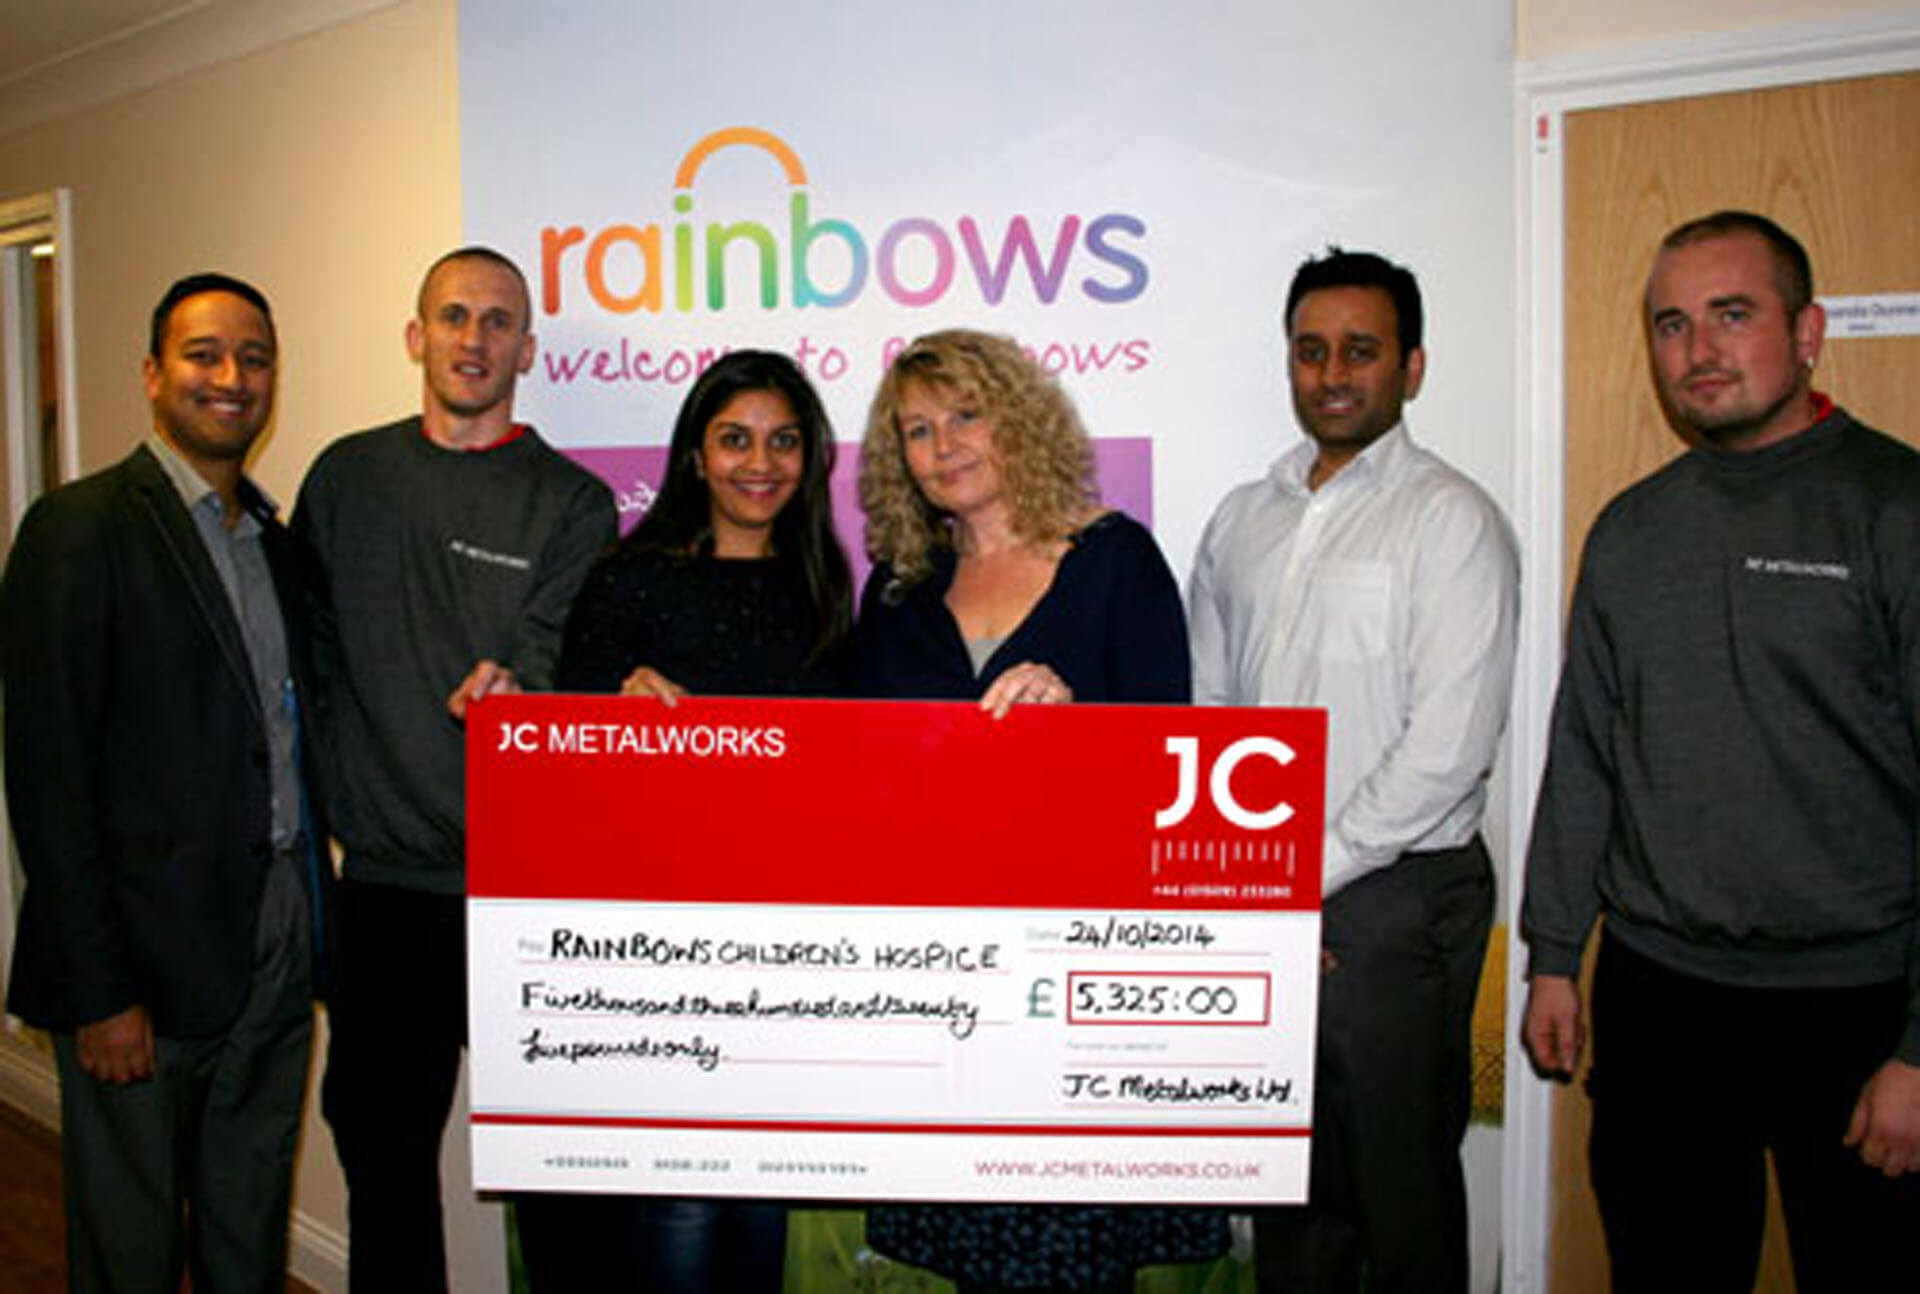 £5325.00 raised for Rainbows Hospice by JC Metalworks